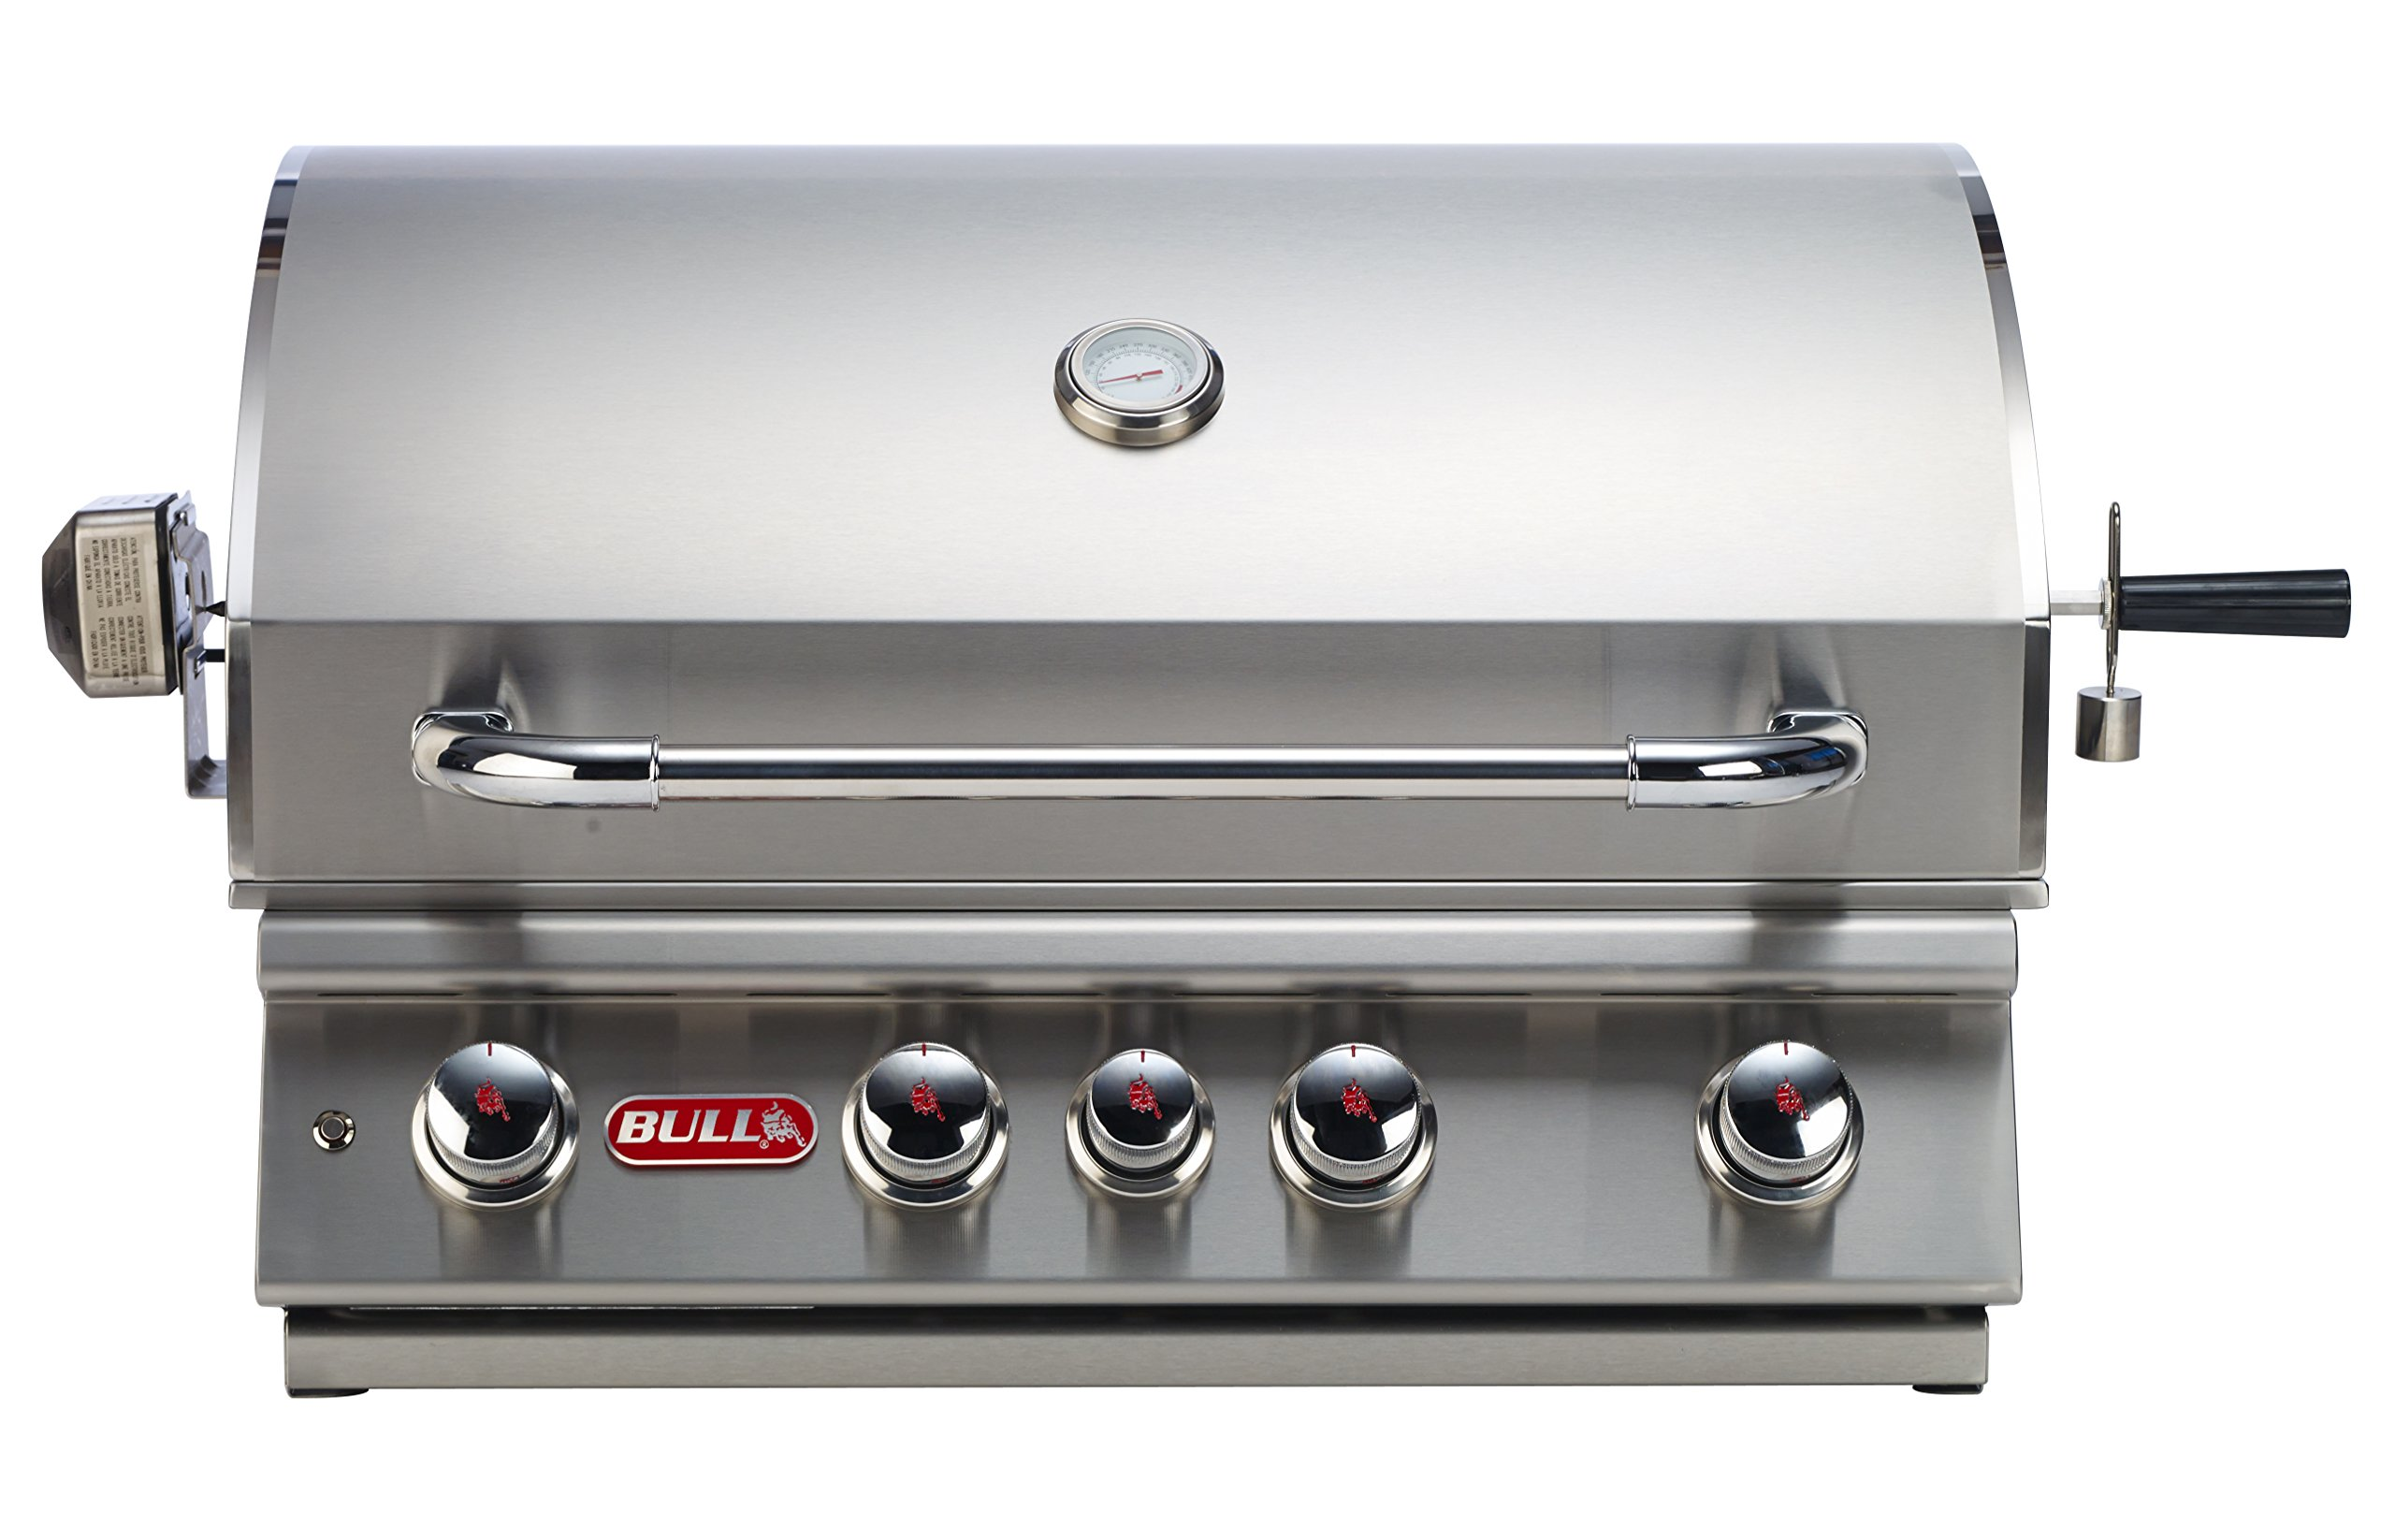 Bull Outdoor Products BBQ 47629 Angus 75,000 BTU Grill Head, Natural Gas by Bull Outdoor Products